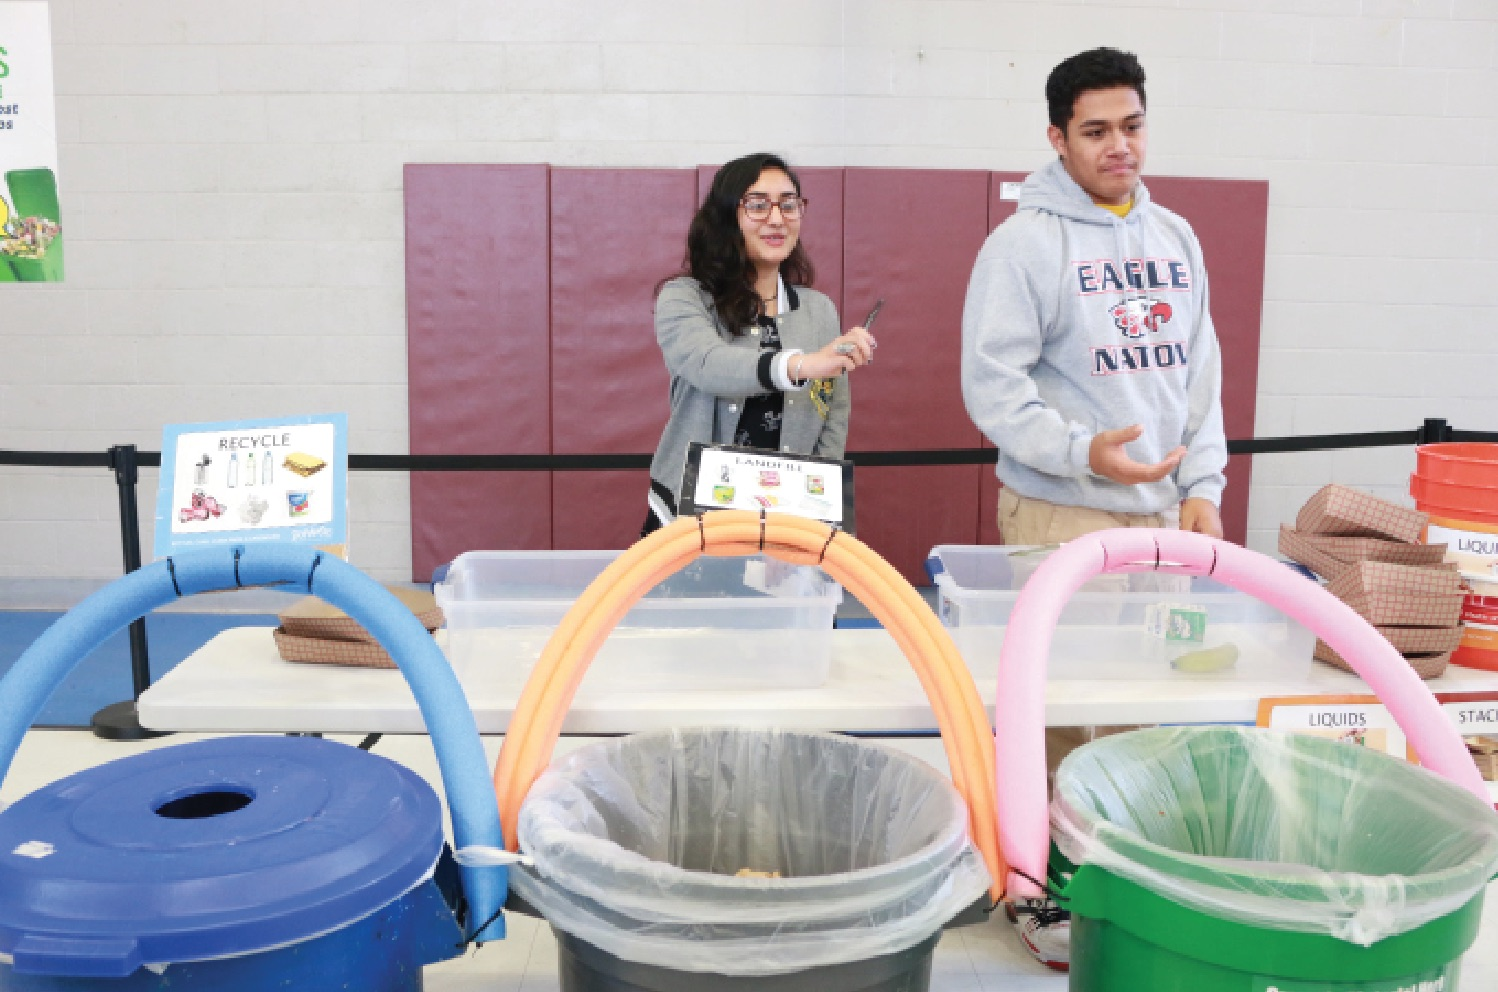 Student volunteer Reha Jandu serves the food share program by directing people to the right bin for the assortment of their leftover food components for nature's benefit.